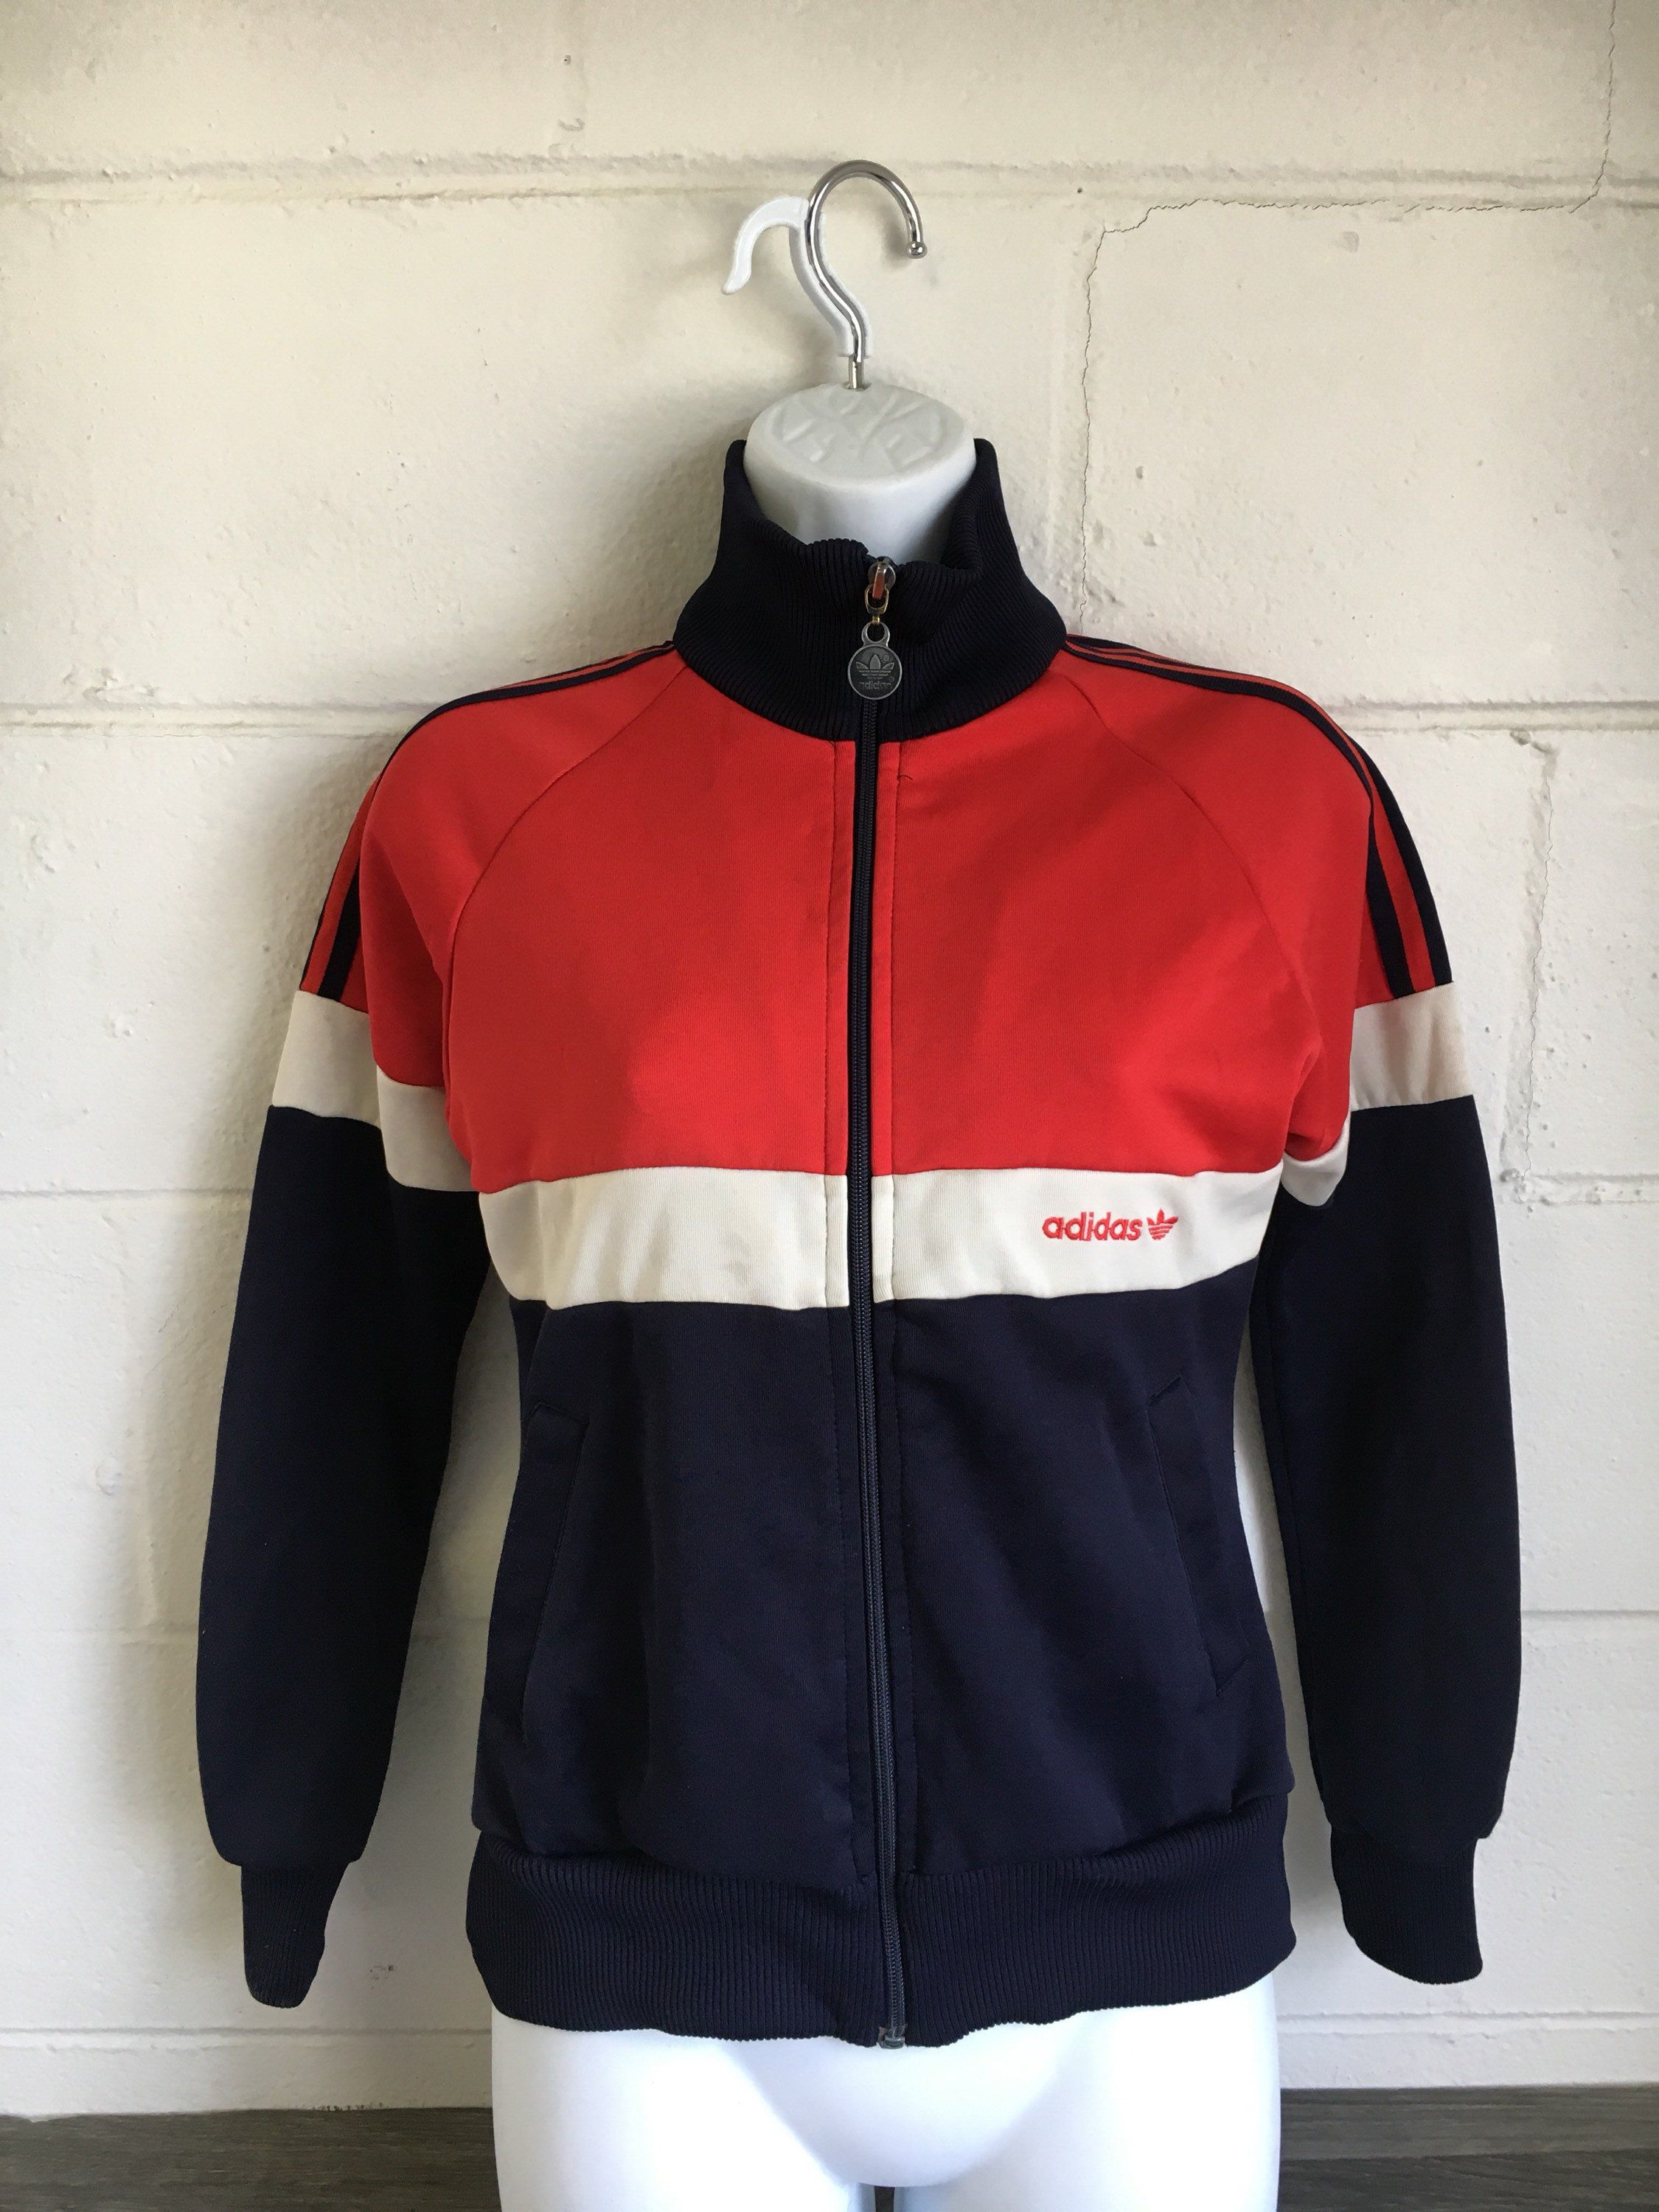 Adidas Track Jacket Mens Size L Red White Blue Football Vintage FC Bayern | eBay